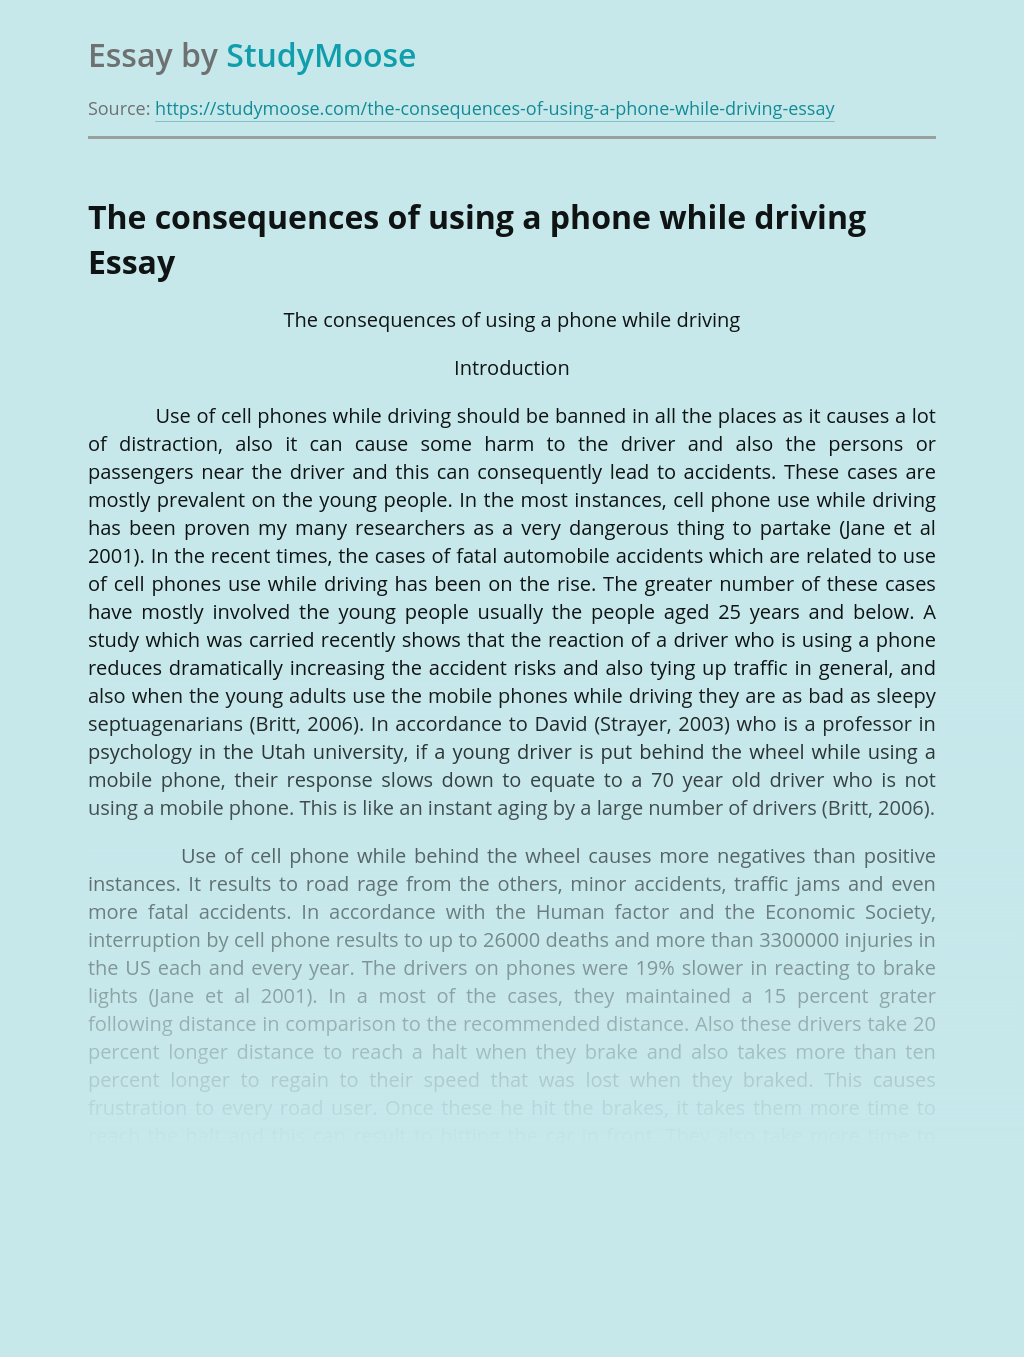 The consequences of using a phone while driving